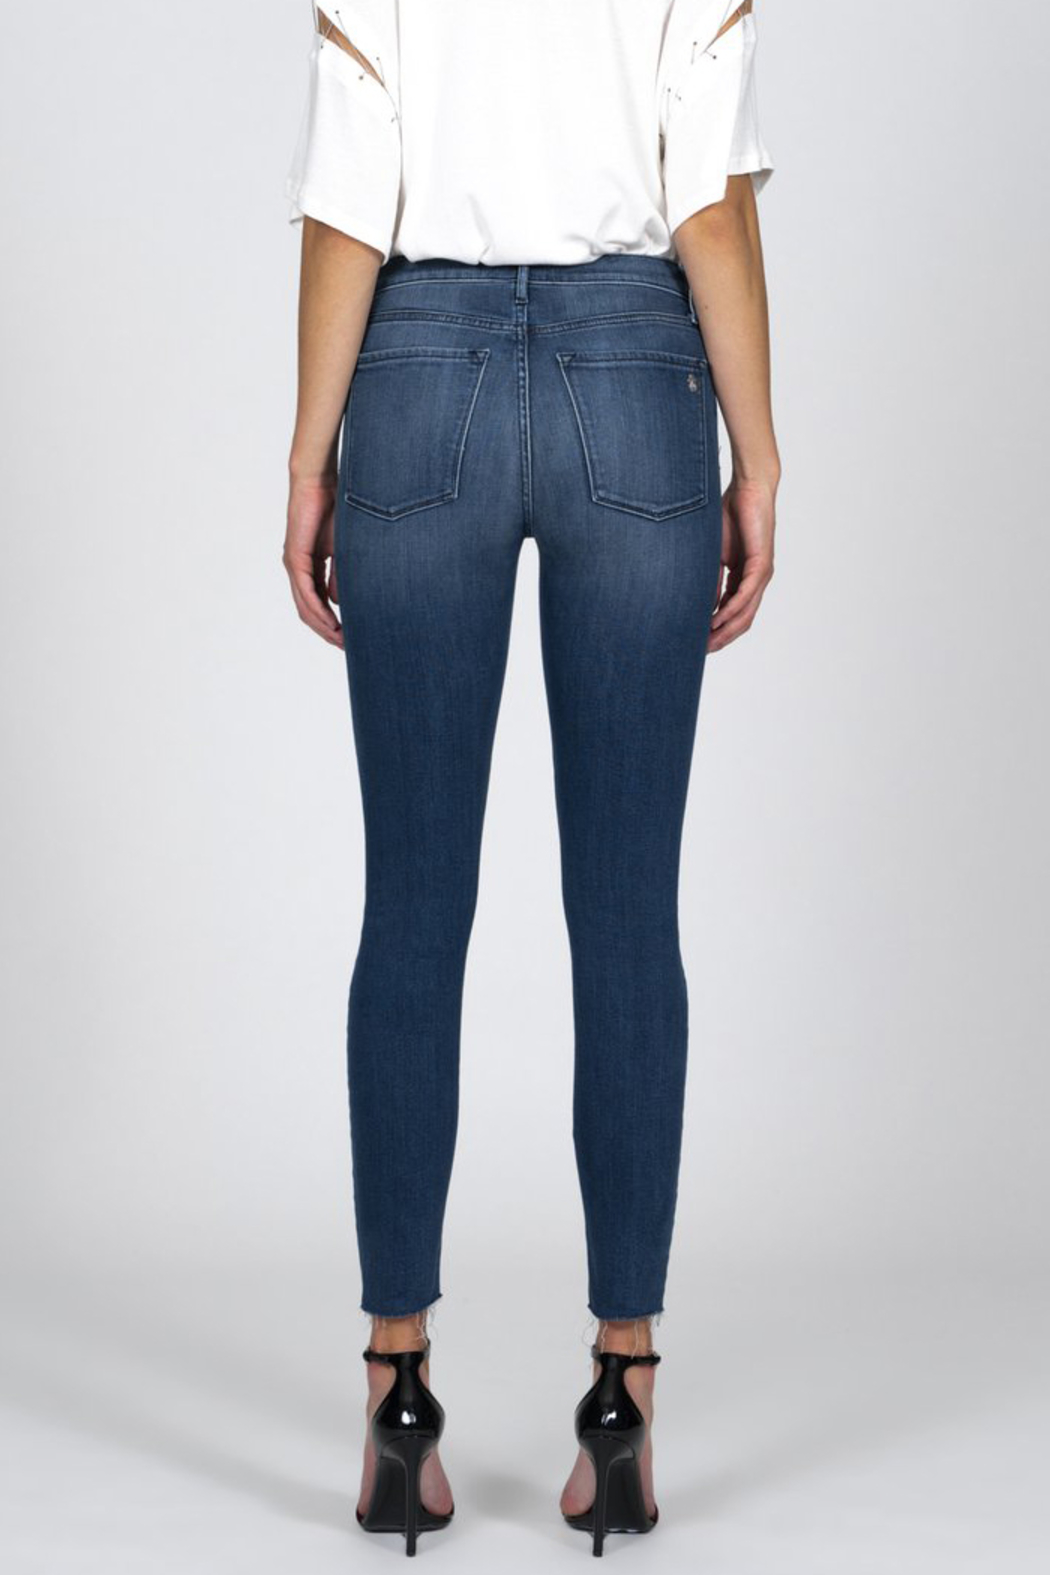 Black Orchid Denim BLACK ORCHID CARMEN HIGH RISE ANKLE FRAY JEAN - Back Cropped Image